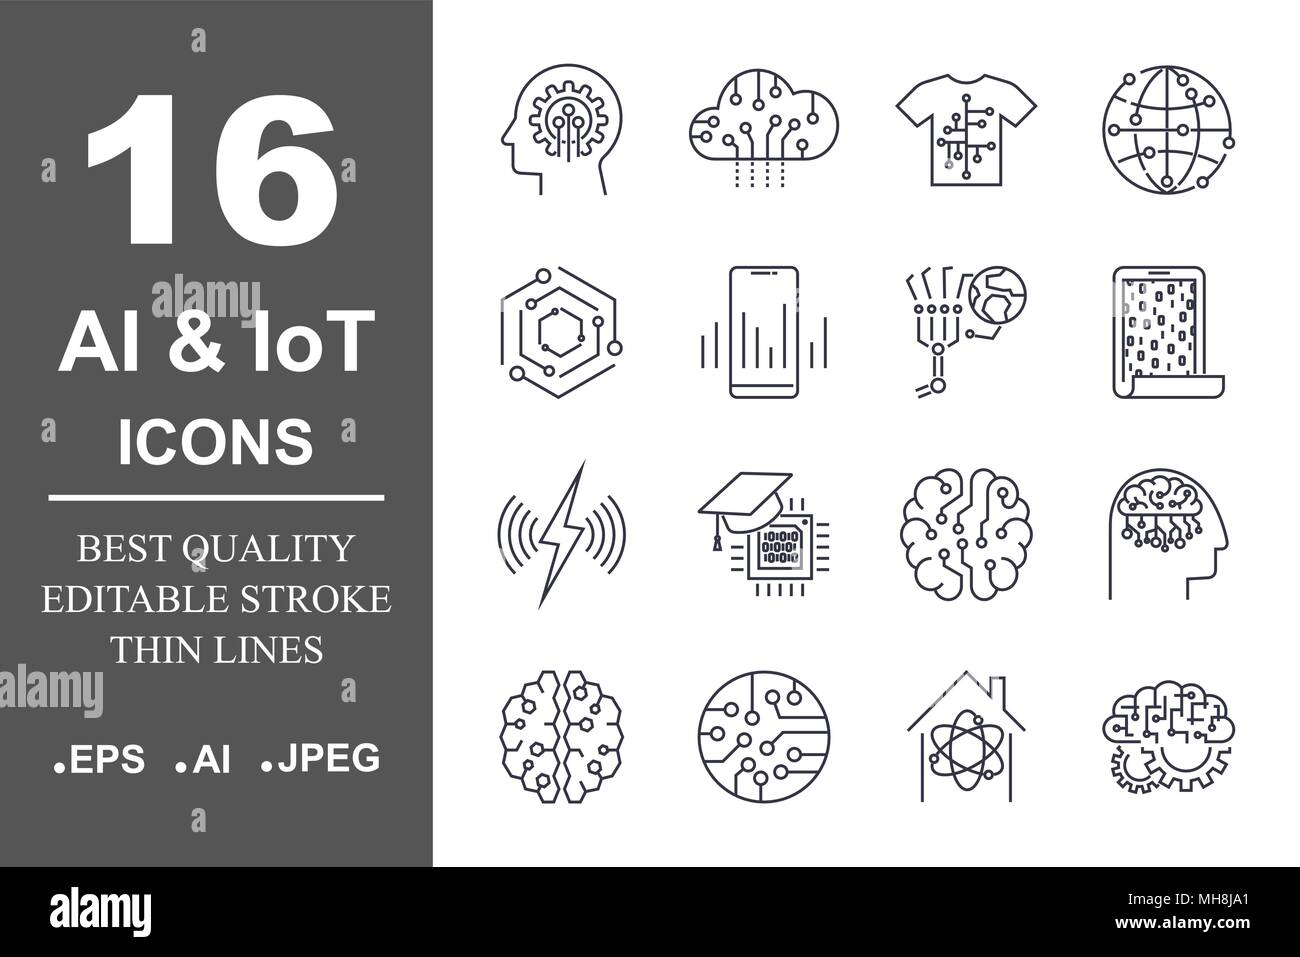 Set of 16 quality icons about AI, IoT,future technology. Editable Stroke. - Stock Image